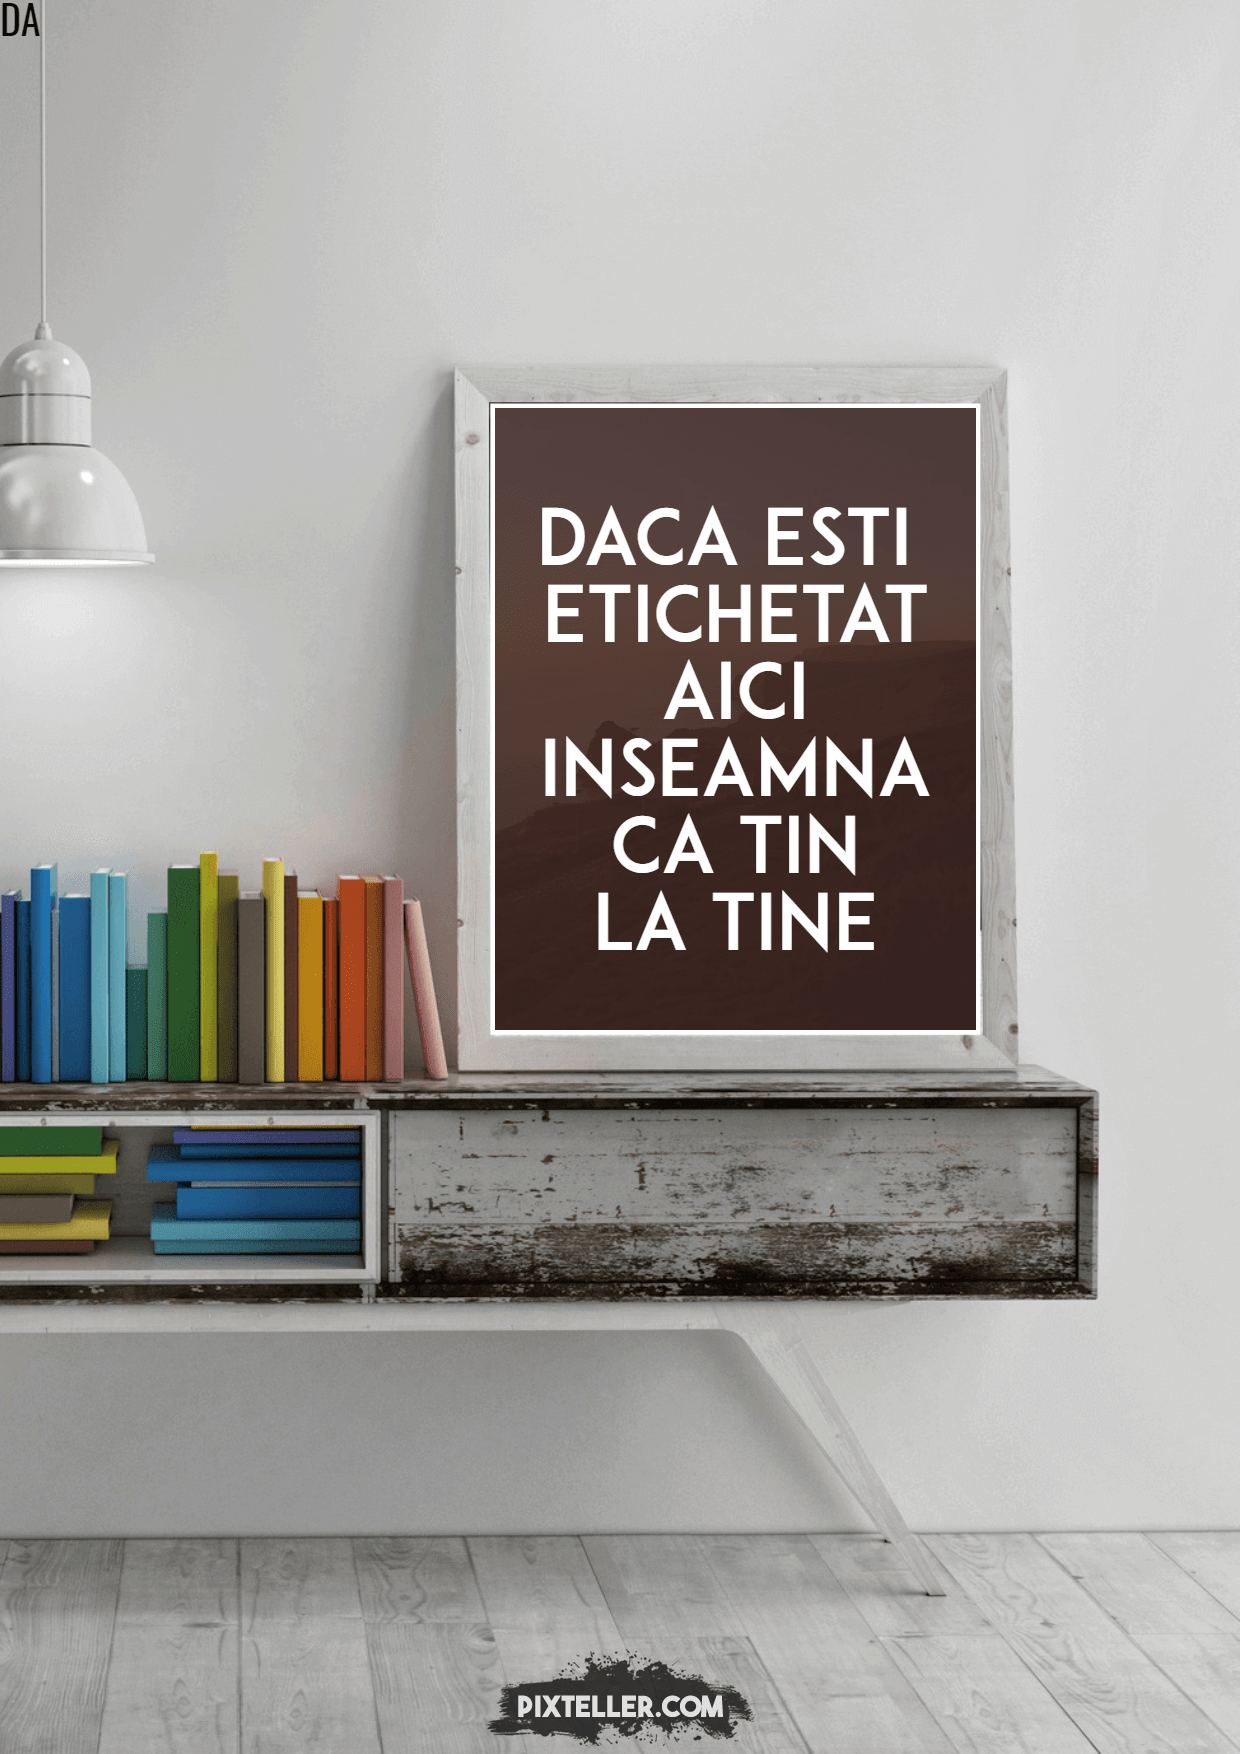 Wall,                Room,                Shelf,                Advertising,                Modern,                Art,                Poster,                Text,                Quote,                Mockup,                Inspiration,                Life,                Photo,                 Free Image